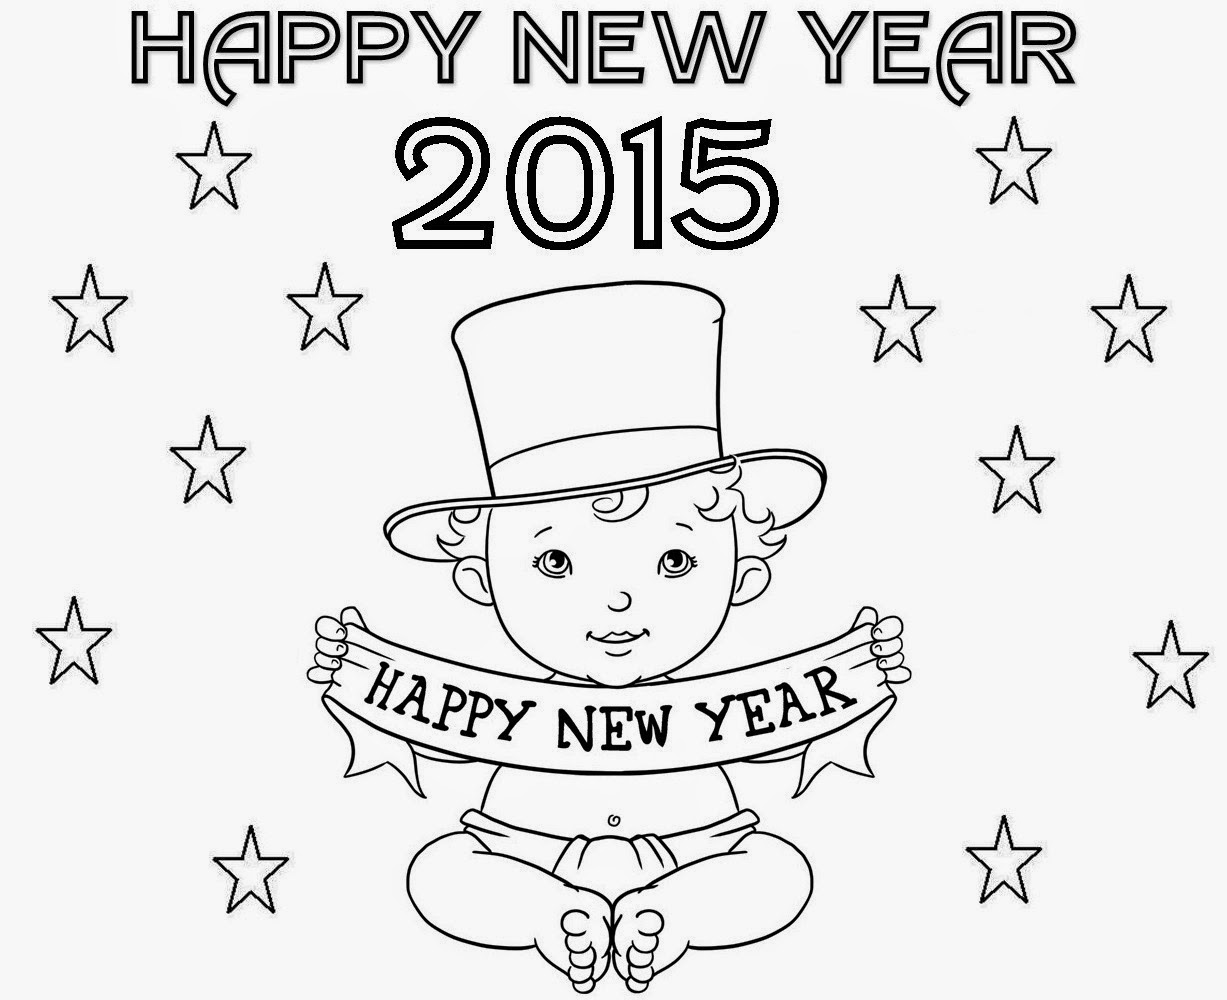 New Year Drawing At Getdrawings Com Free For Personal